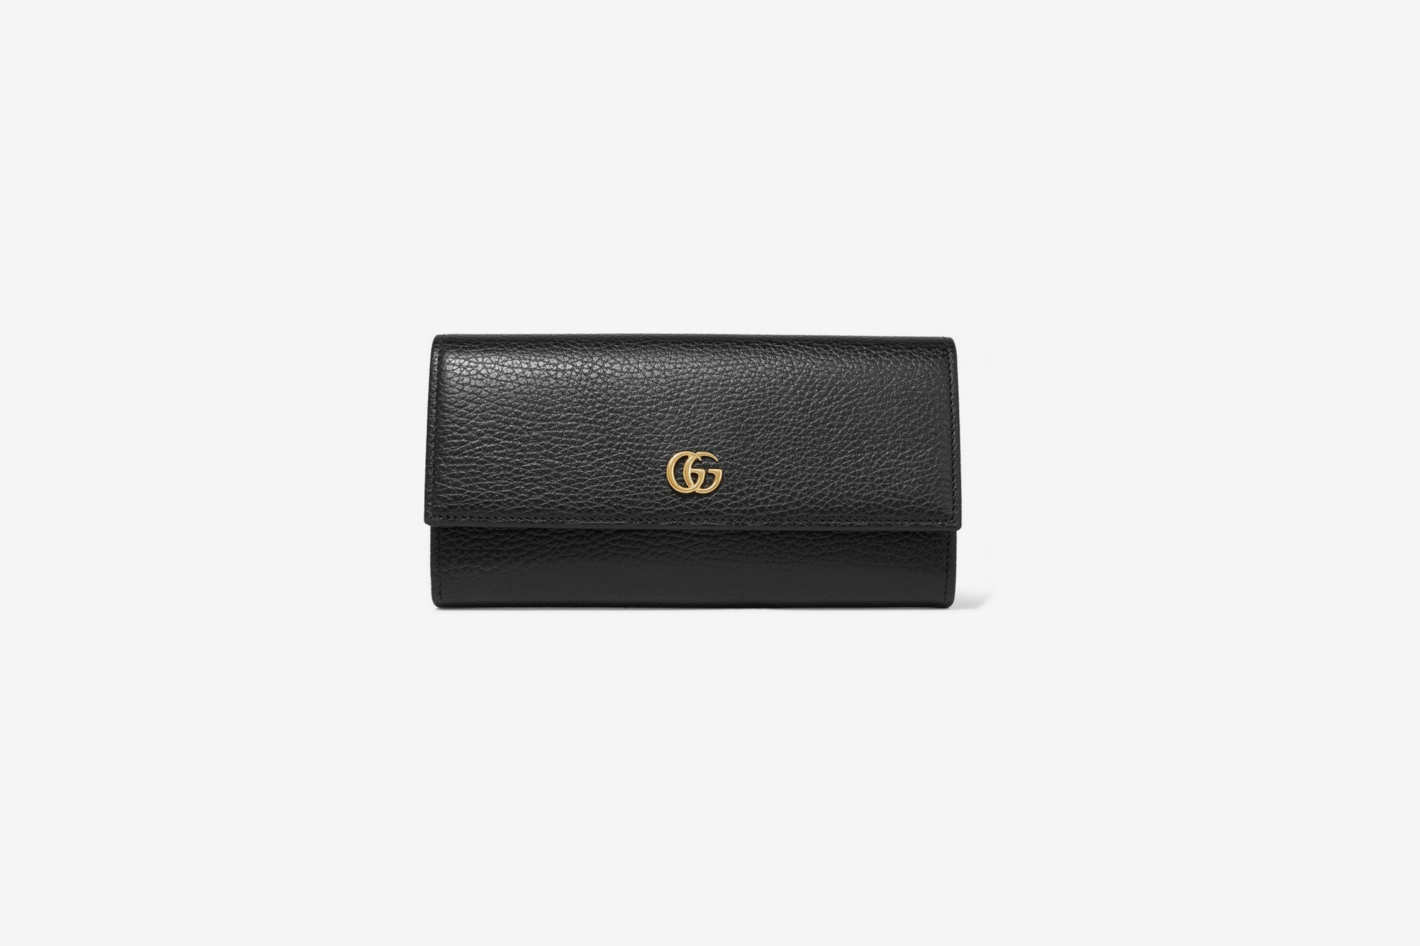 2a65df1bb913 Best Wallets and Cardholders for Women and Men 2019